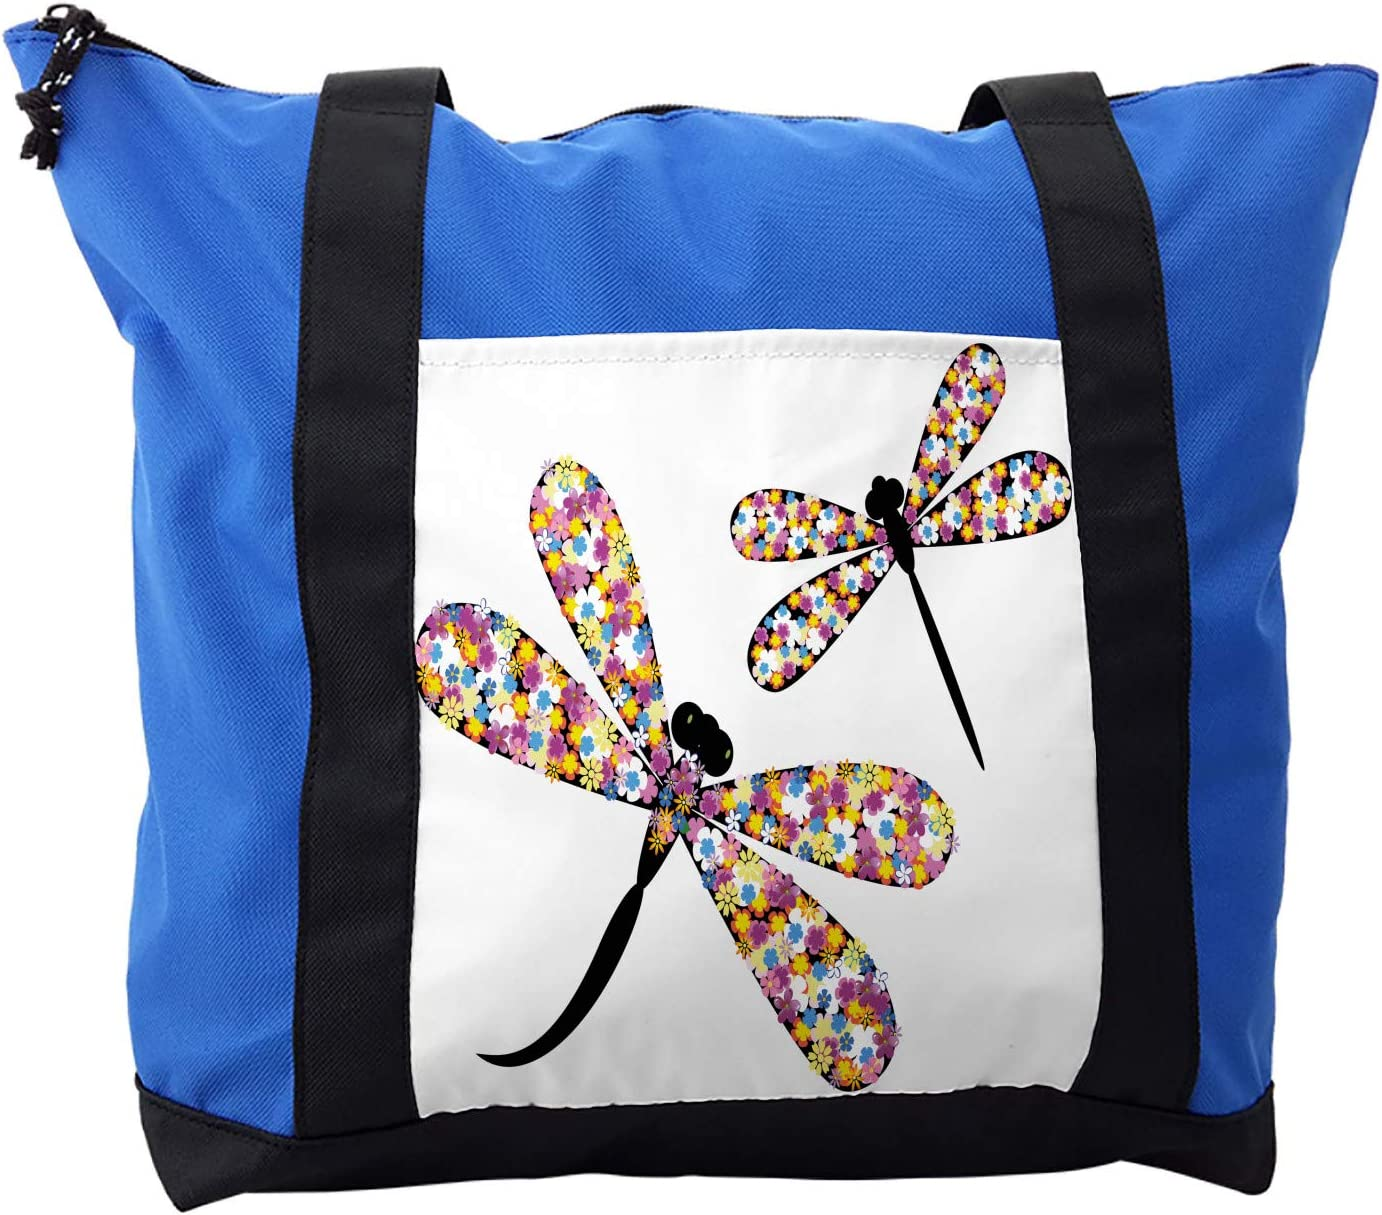 Ambesonne Colorful Shoulder Bag, Dragonflies Black Body, Durable with Zipper